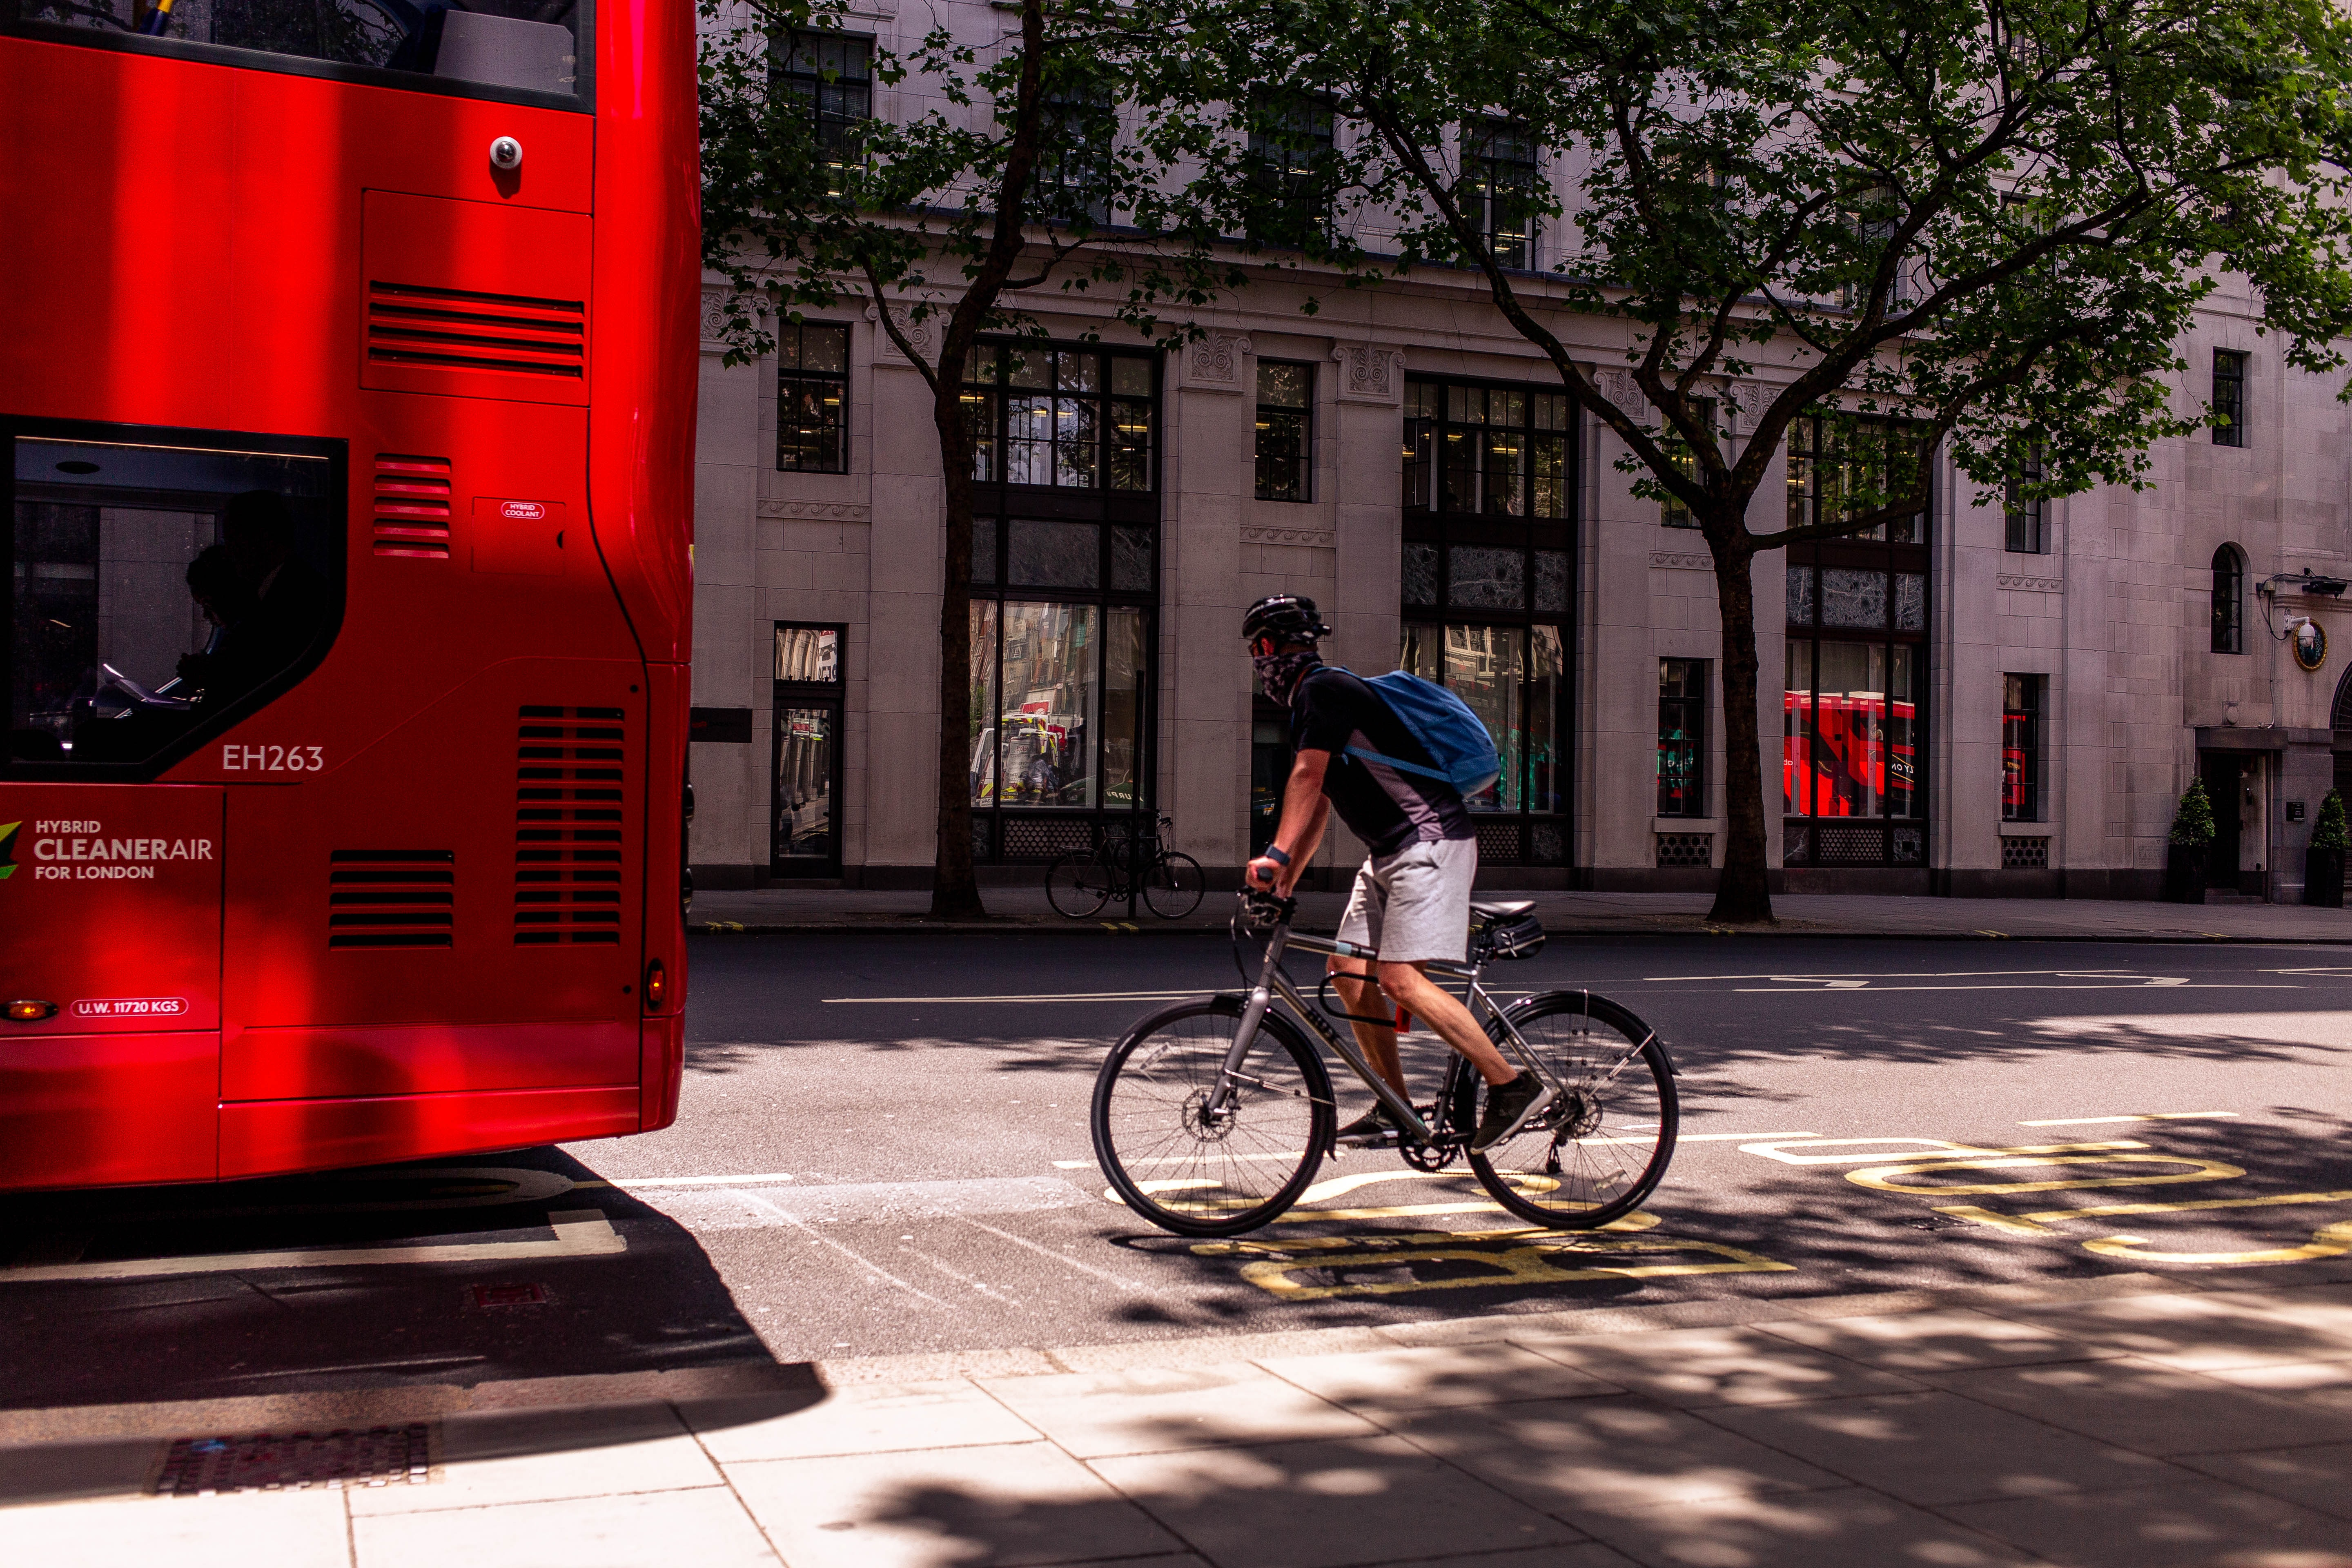 Image by Charisse Kenion | A cyclist behind a London bus